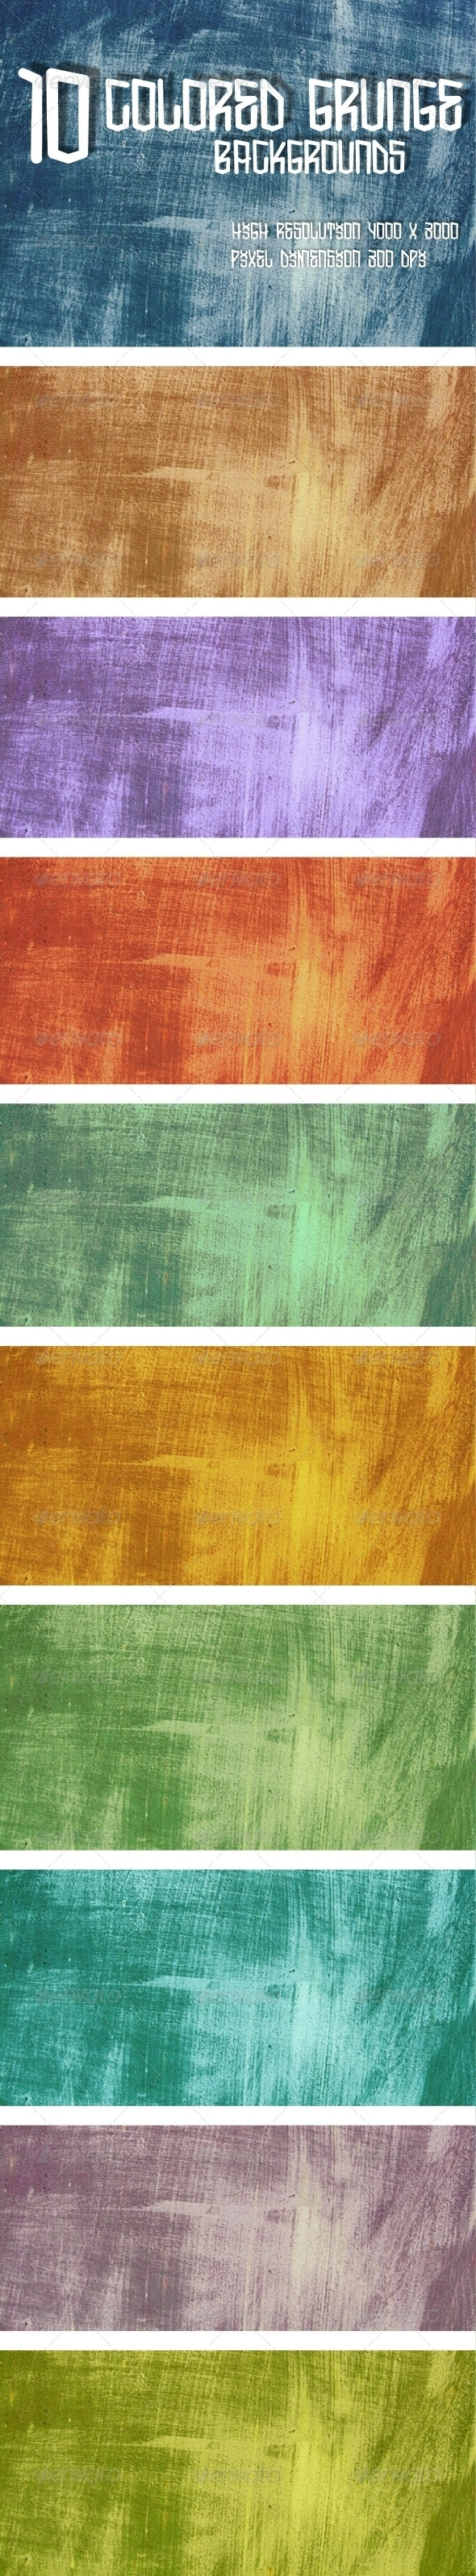 Colored Grunge Pack 1 - Industrial / Grunge Textures